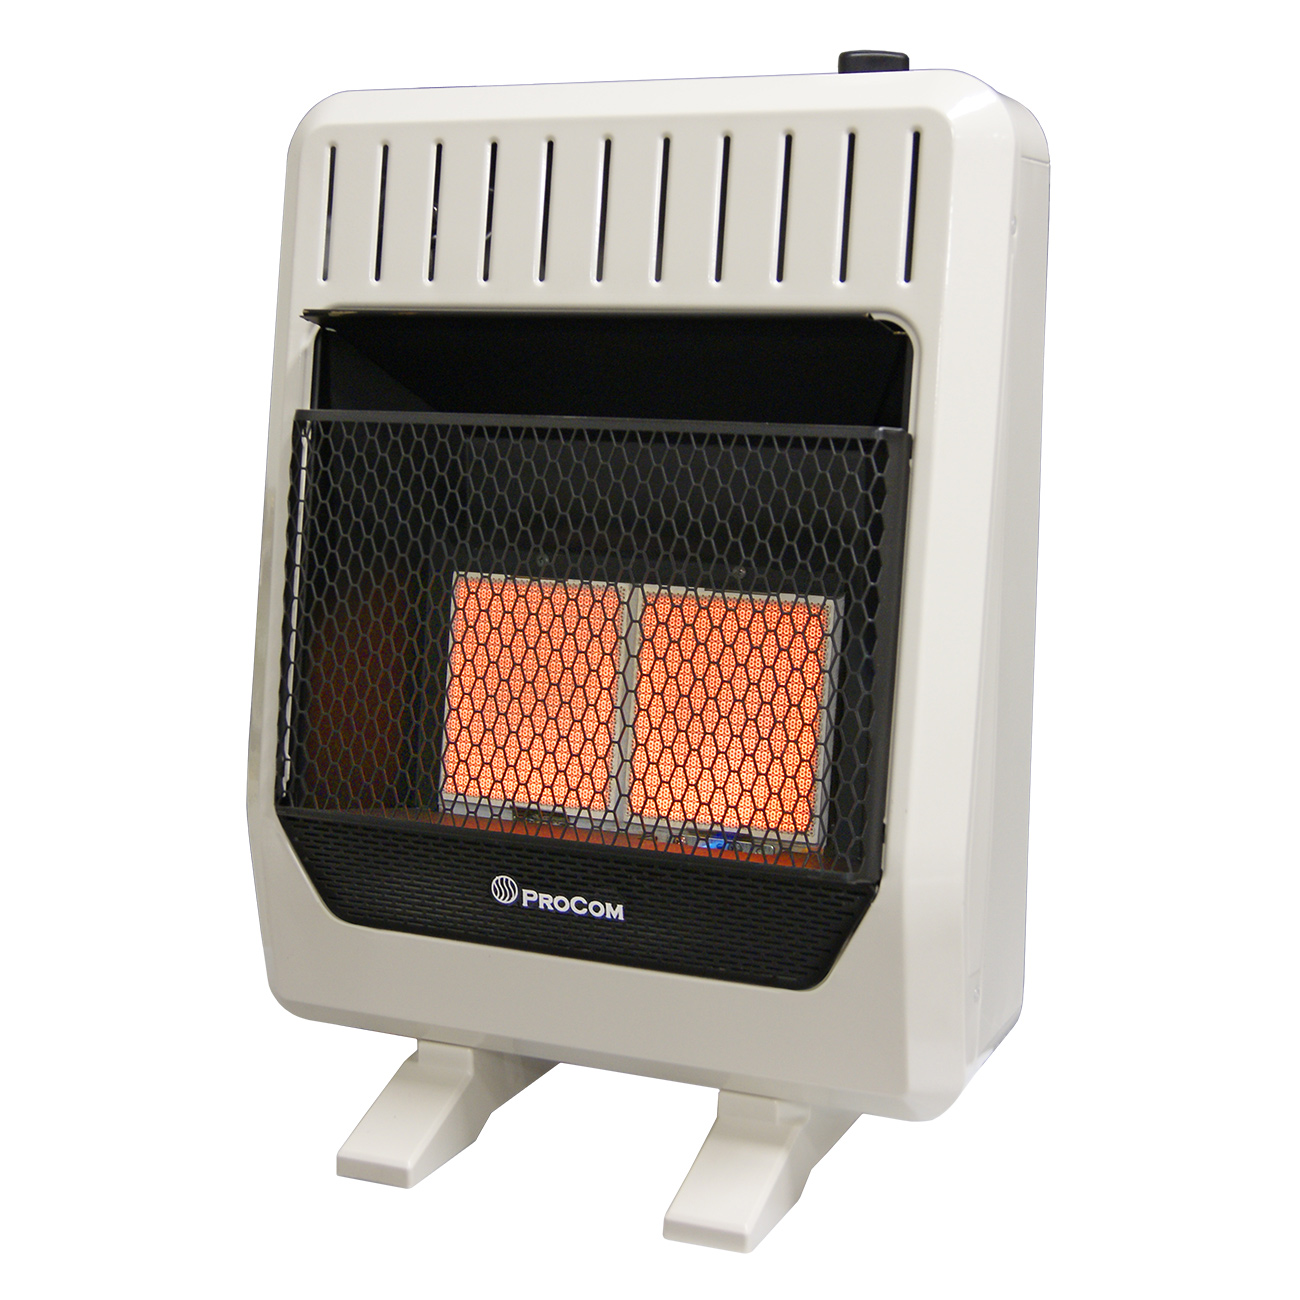 Ventless Dual Fuel Wall Heater Manual Thermostat Control